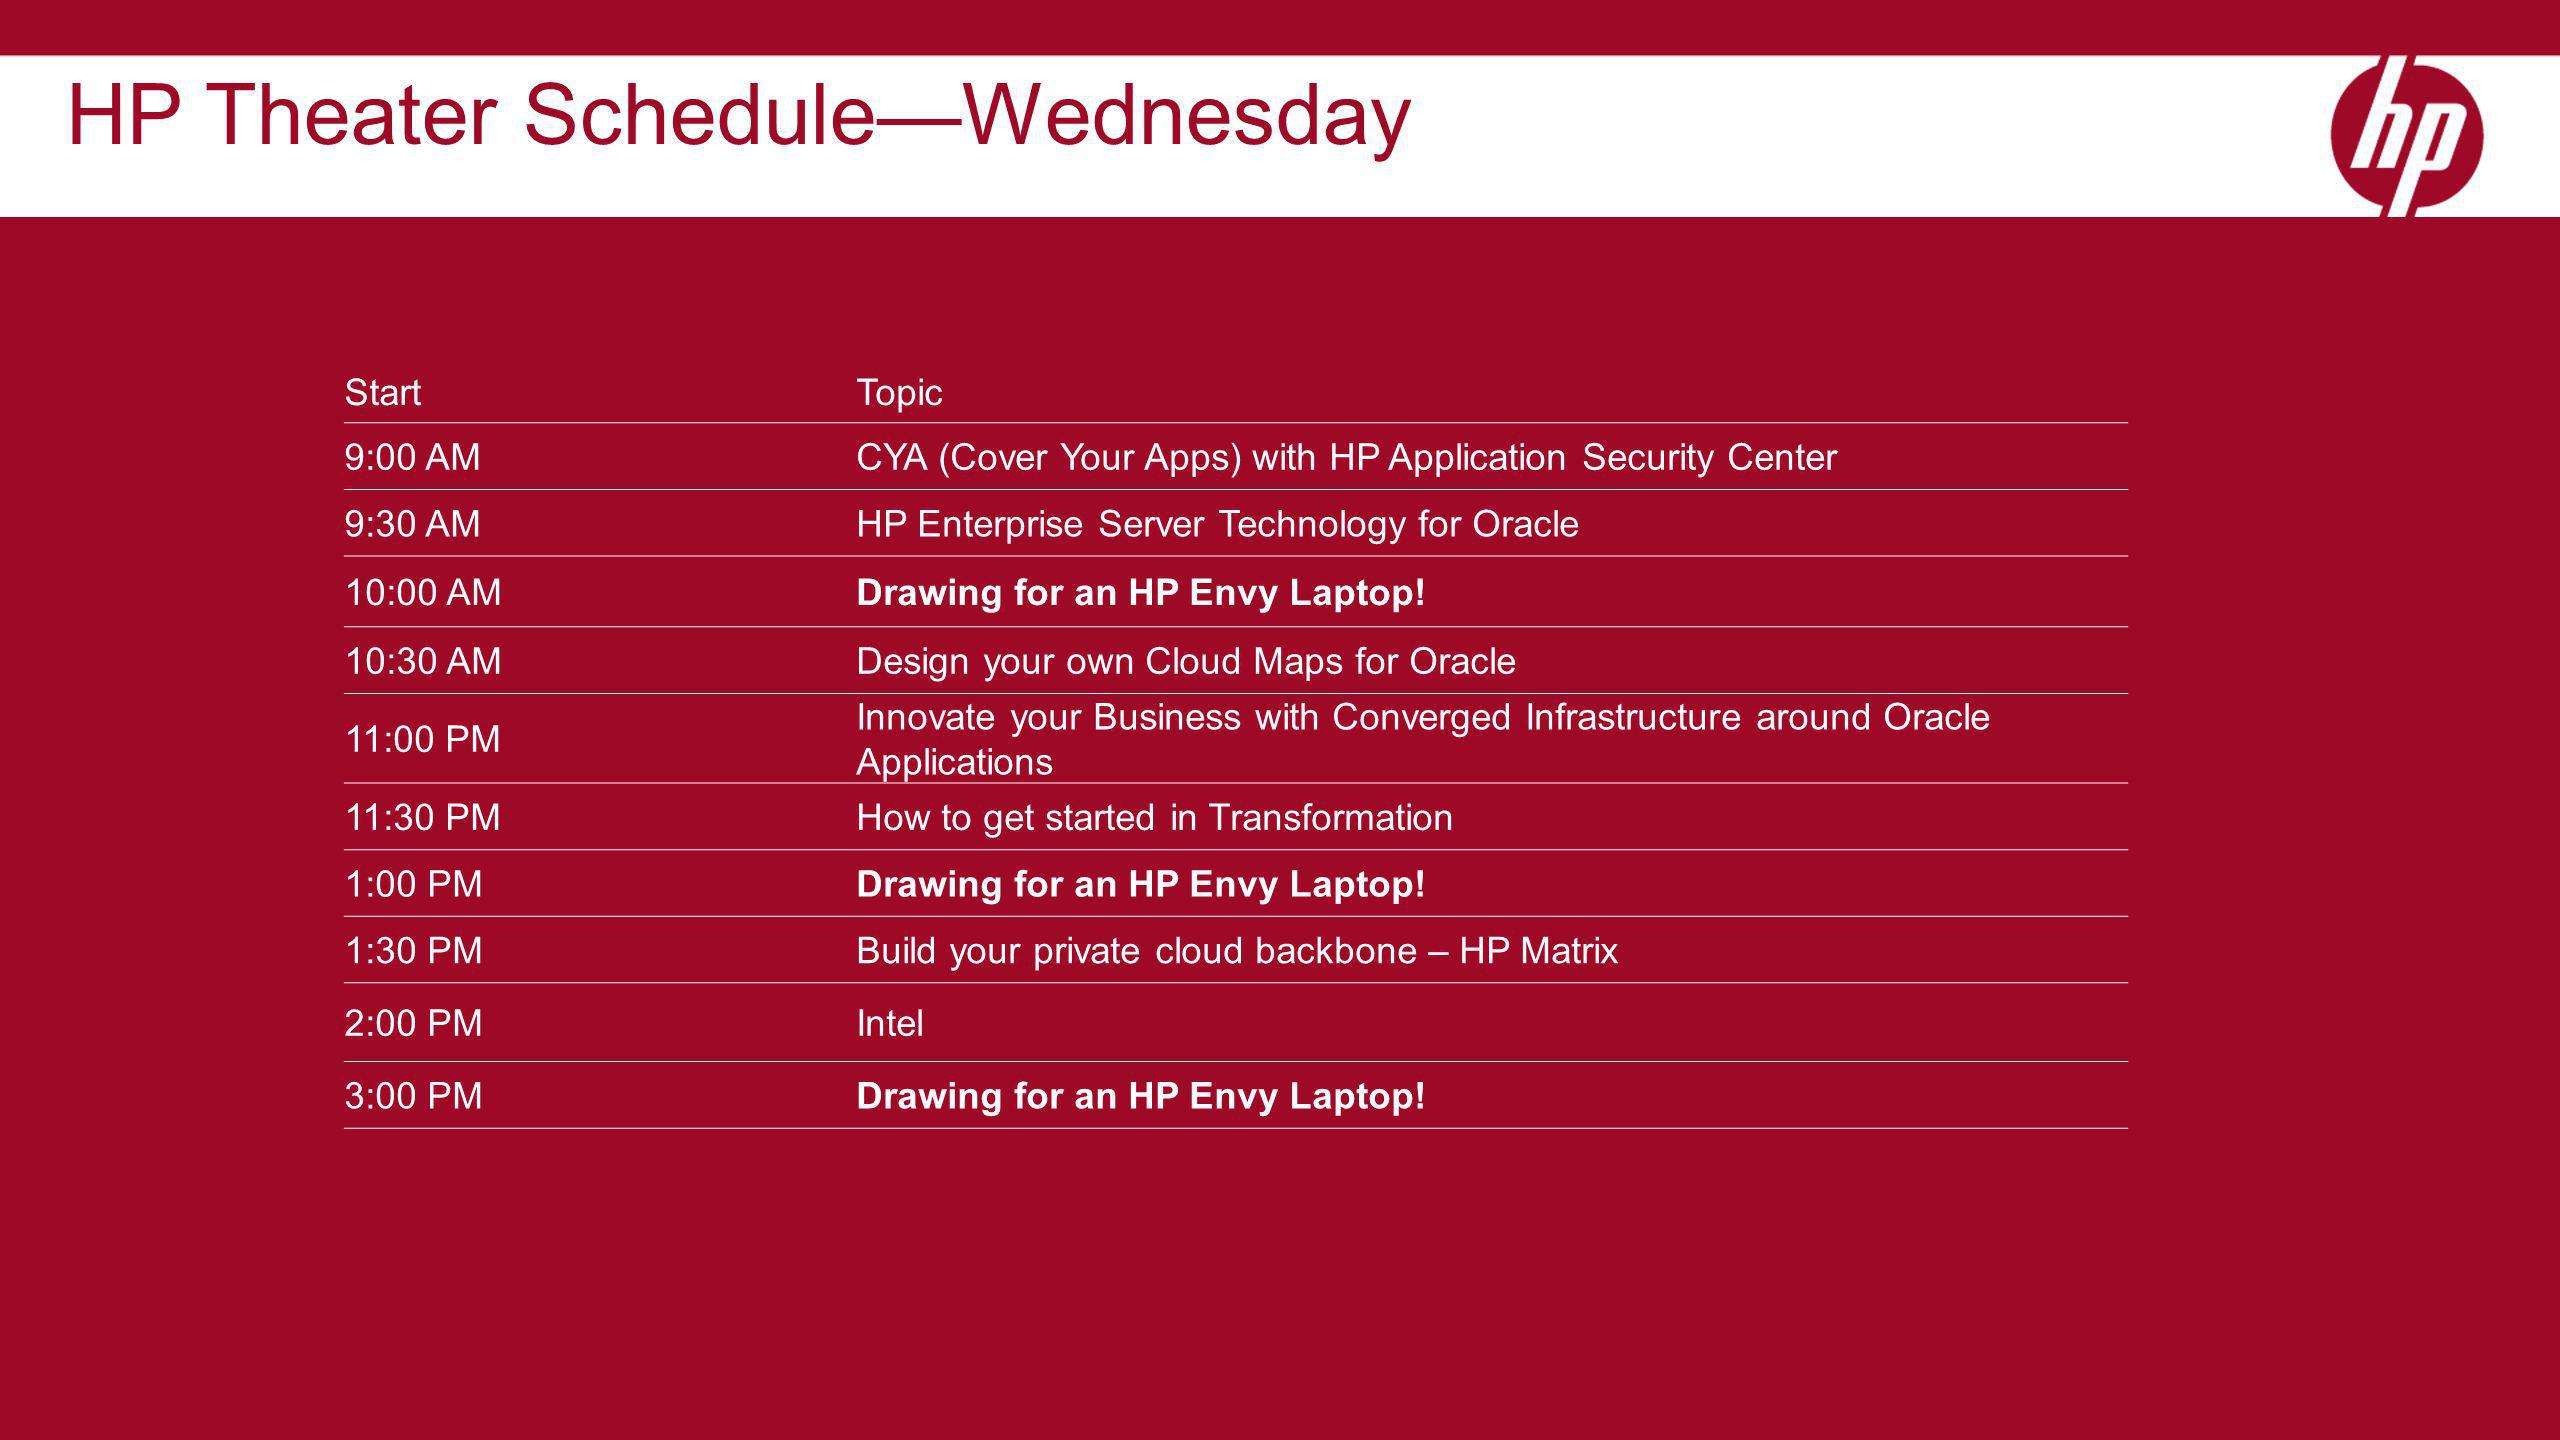 StartTopic 9:00 AMCYA (Cover Your Apps) with HP Application Security Center 9:30 AMHP Enterprise Server Technology for Oracle 10:00 AMDrawing for an HP Envy Laptop.